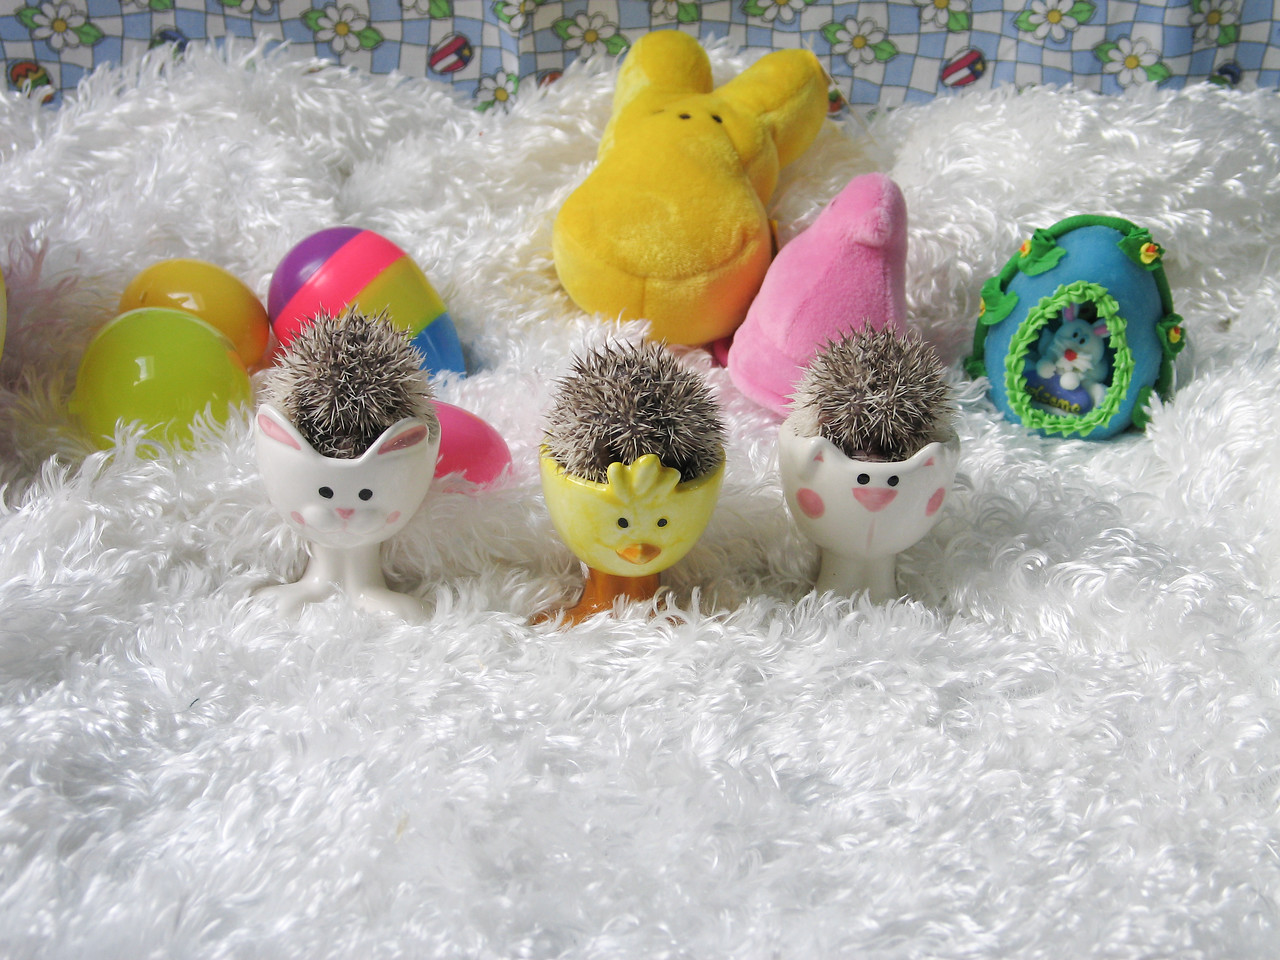 Easter Hedgies 2006  Easter Hedgies 2006  Filename reference: 20060406-161414-HAH-Easter_Hedgies_2006-SM